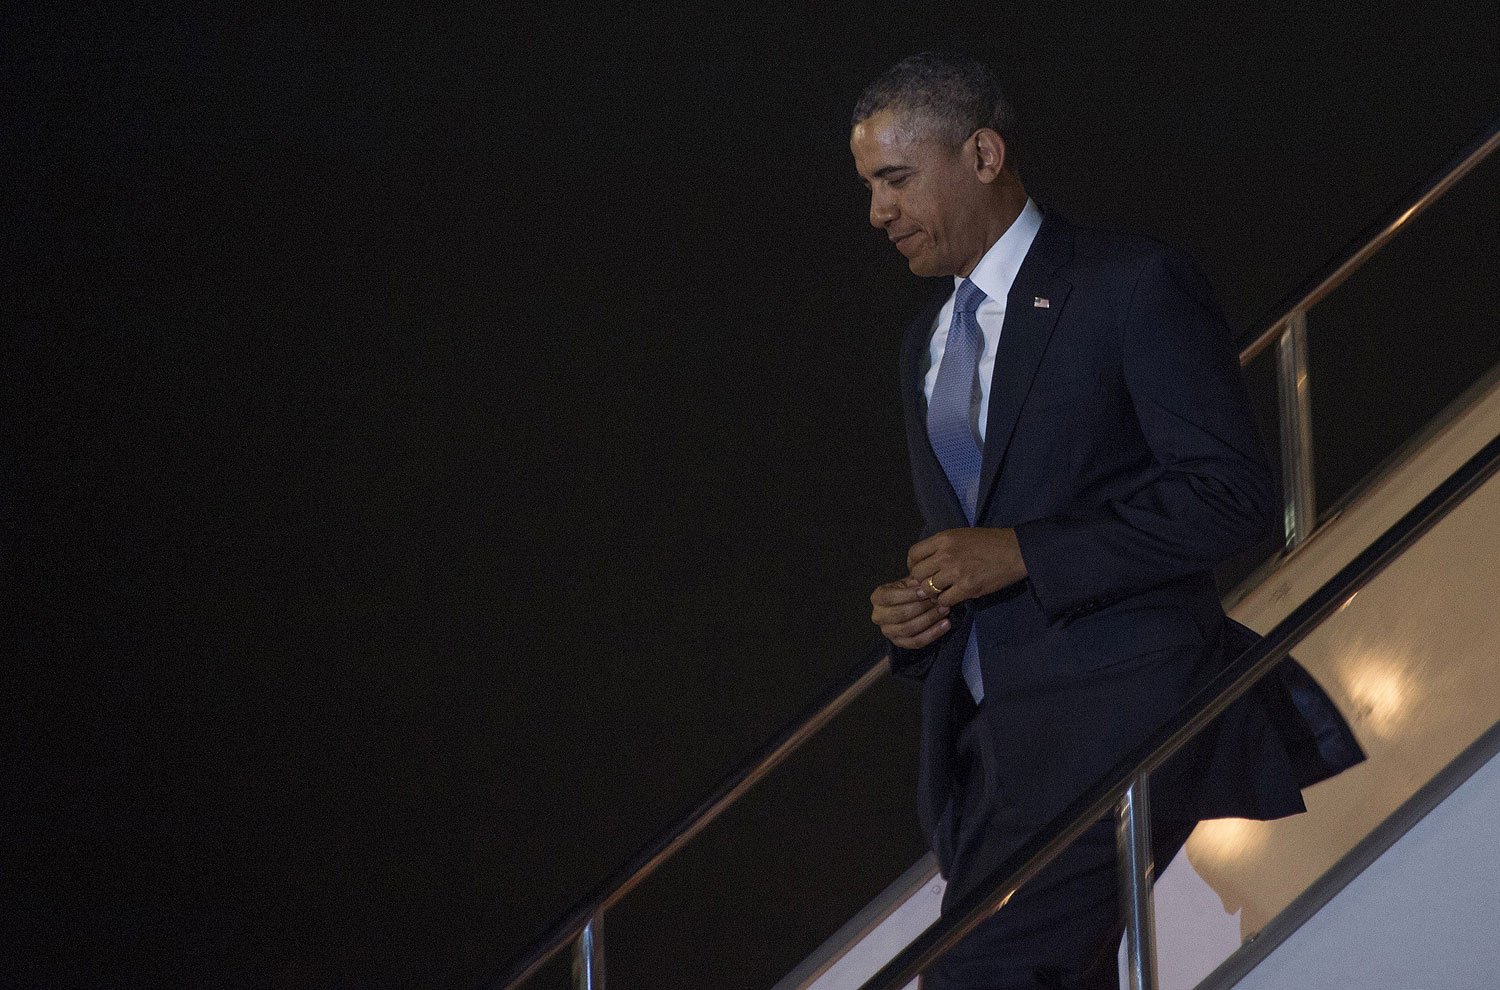 President Obama walks off Air Force One as he arrives at Haneda Airport in Tokyo, on April 23, 2014.